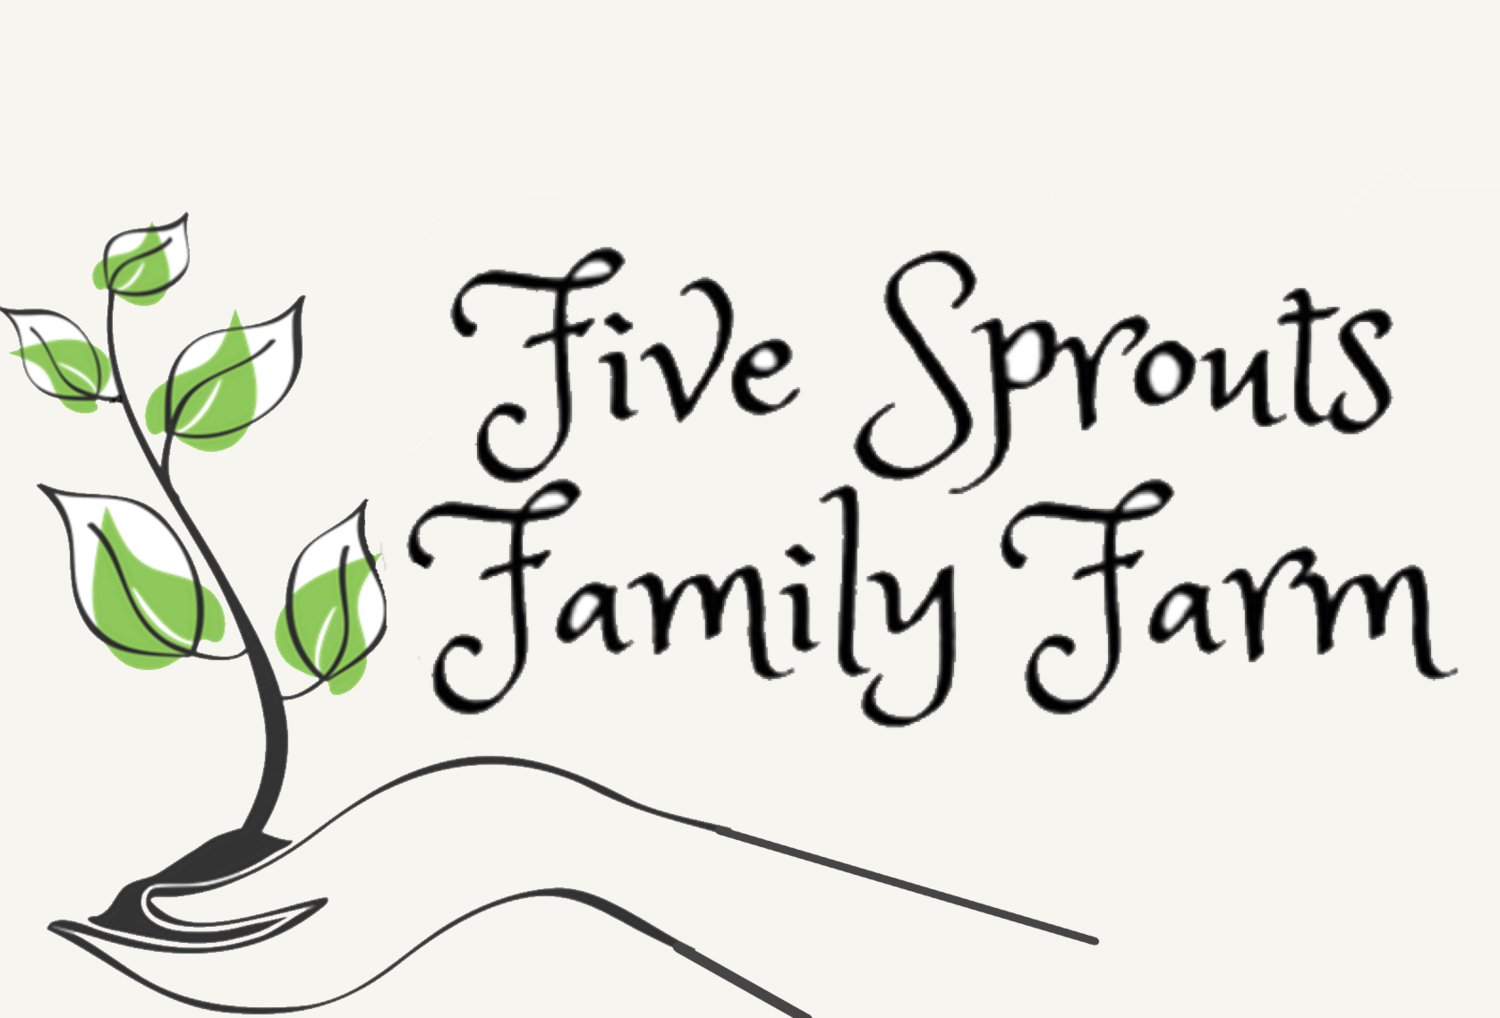 Five Sprouts Family Farm